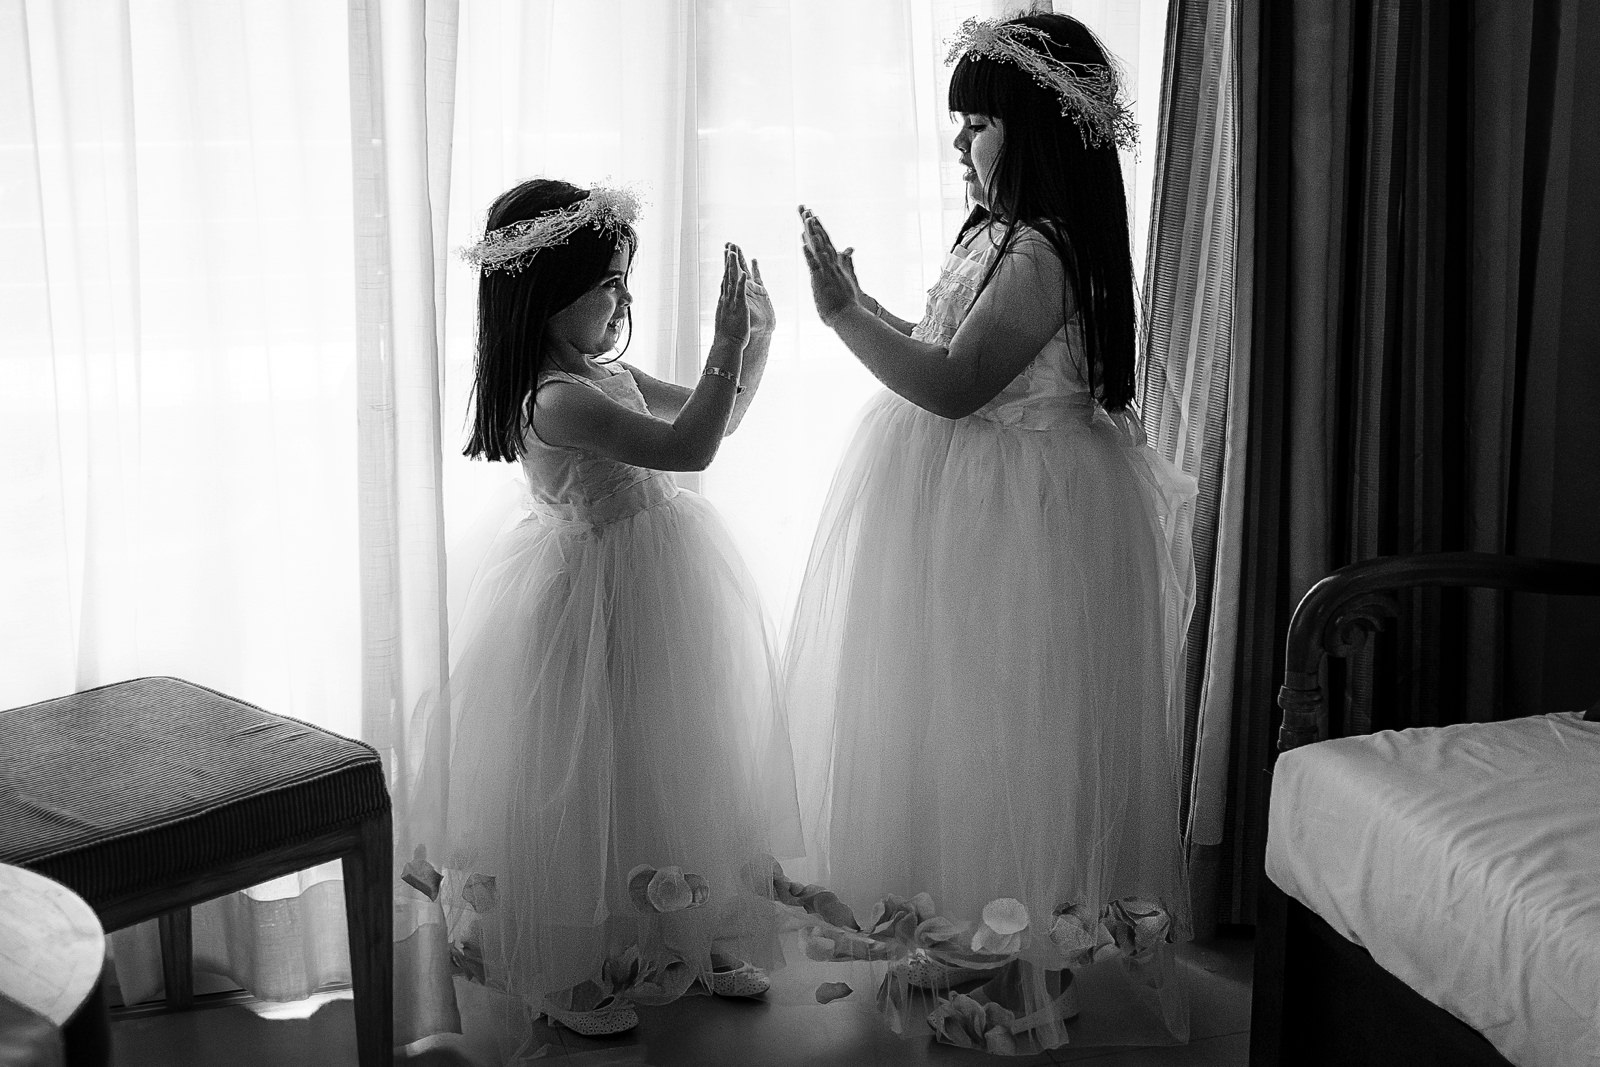 Flower girls playing with their hands on the room before the wedding ceremony